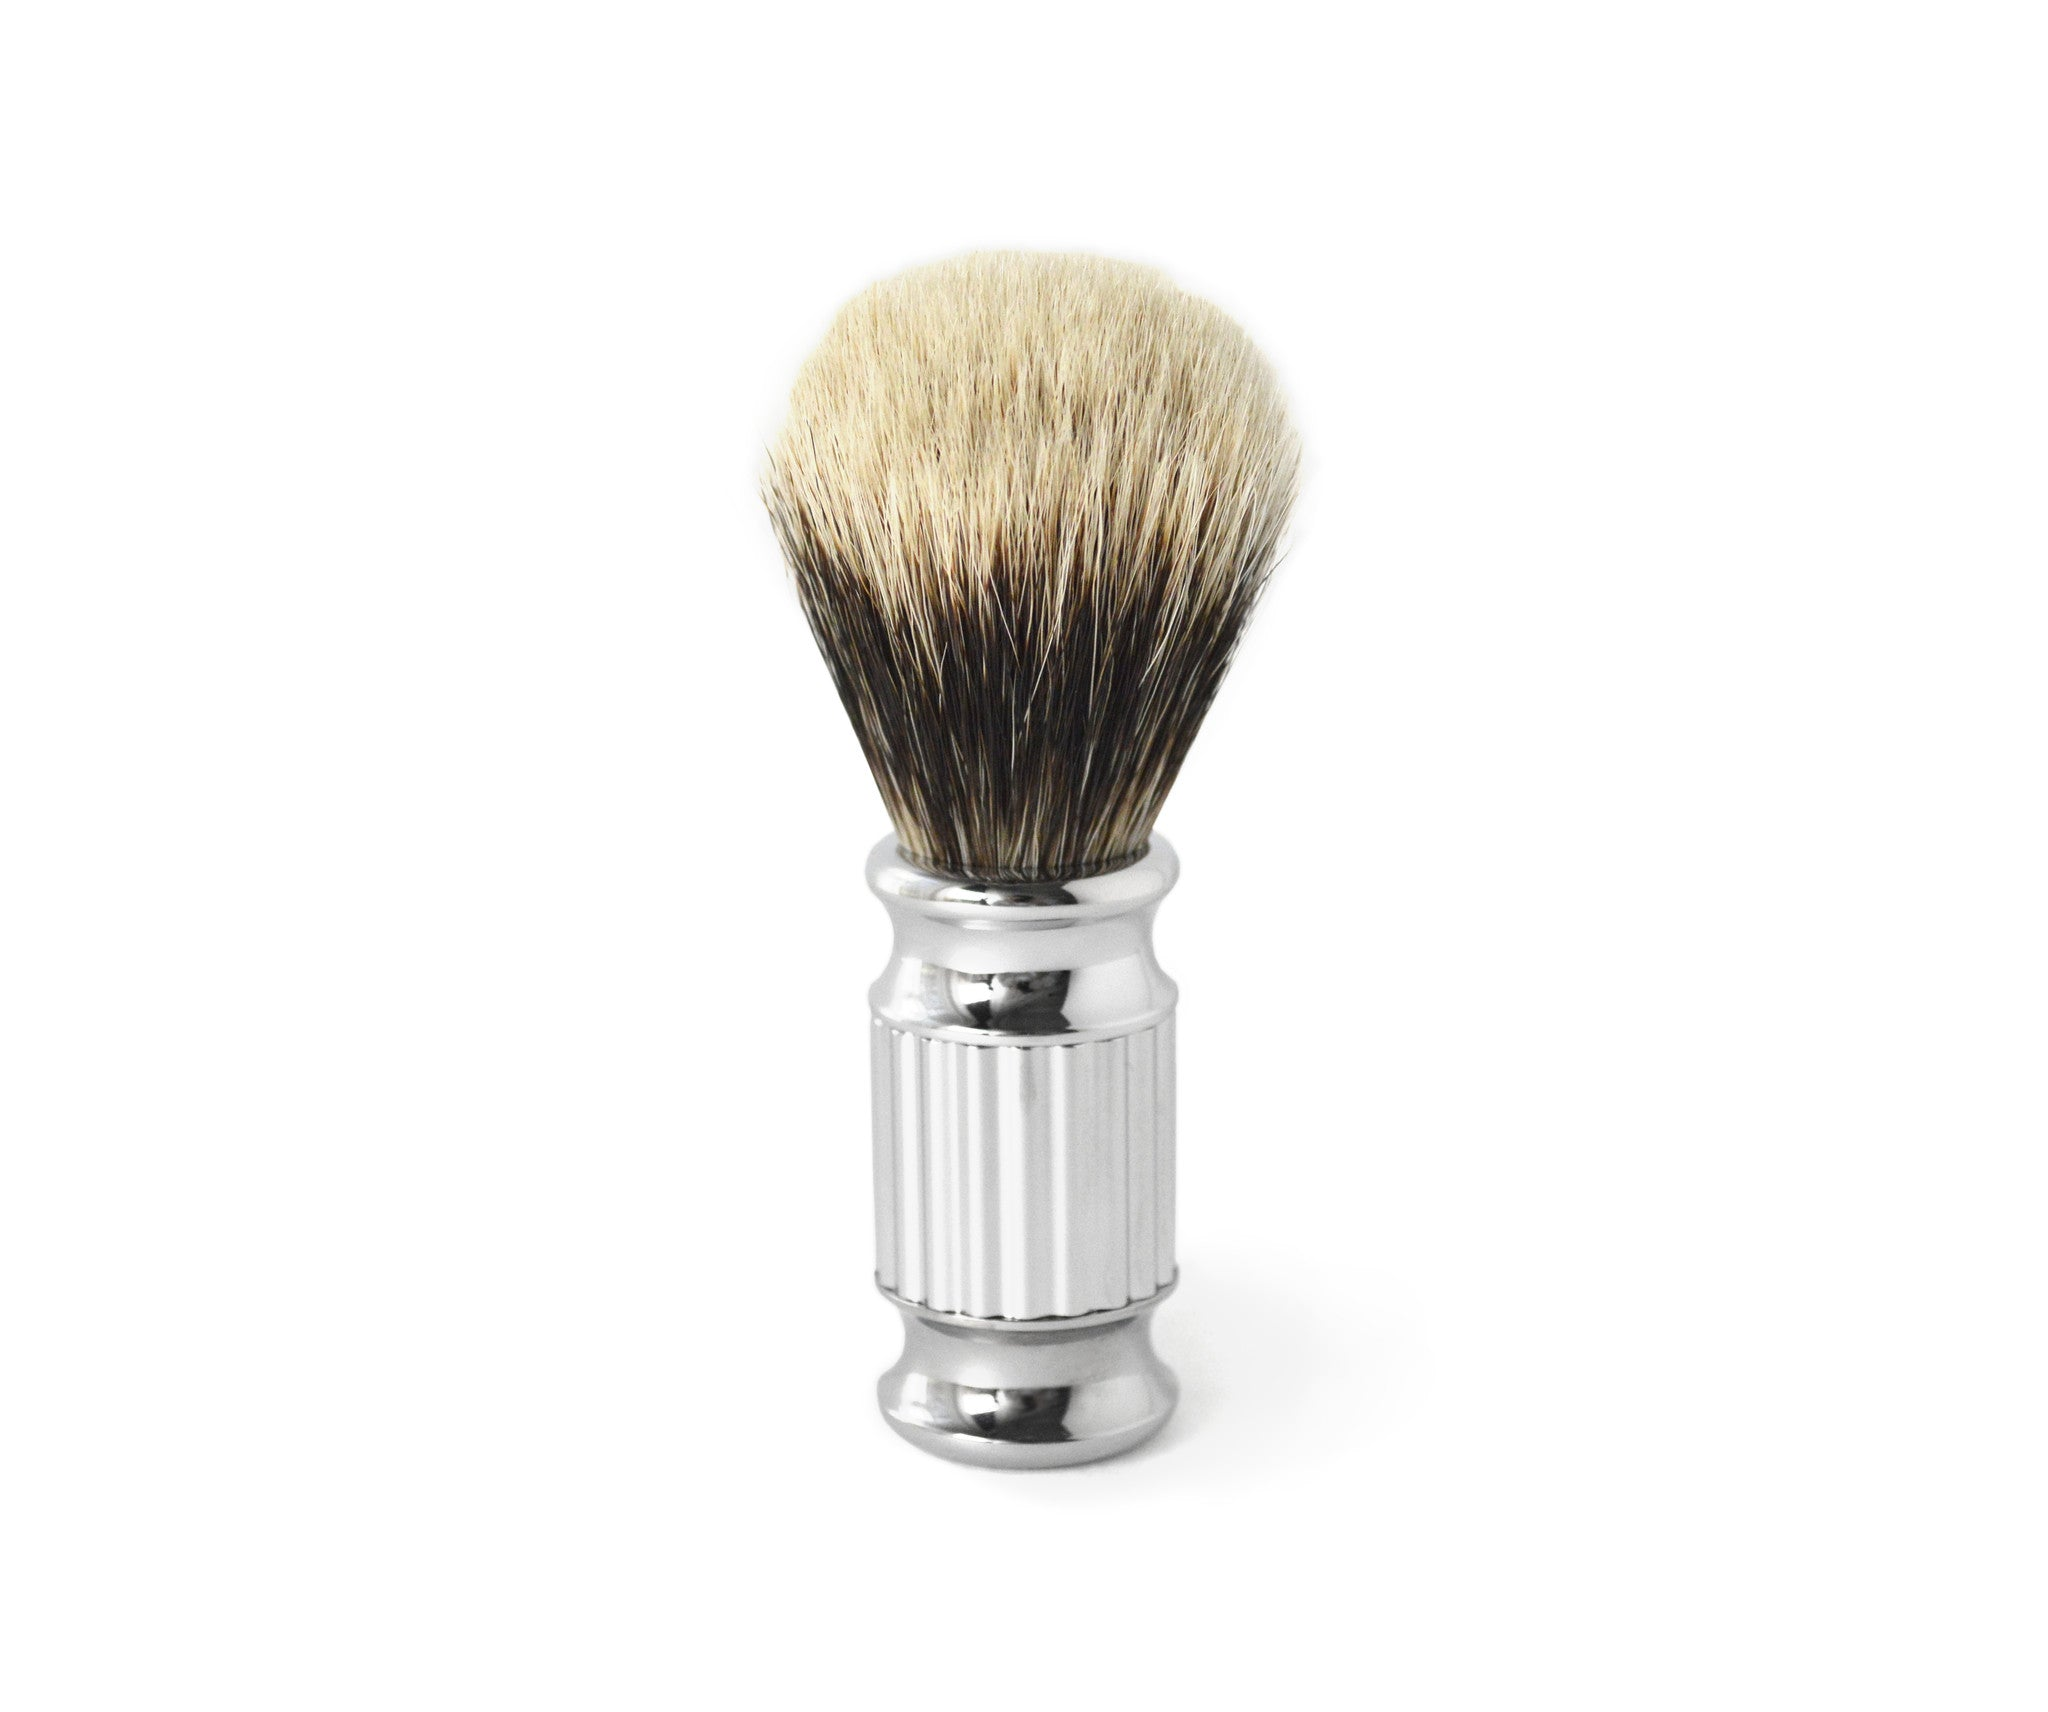 Van Alen Deco Shaving Brush for Men